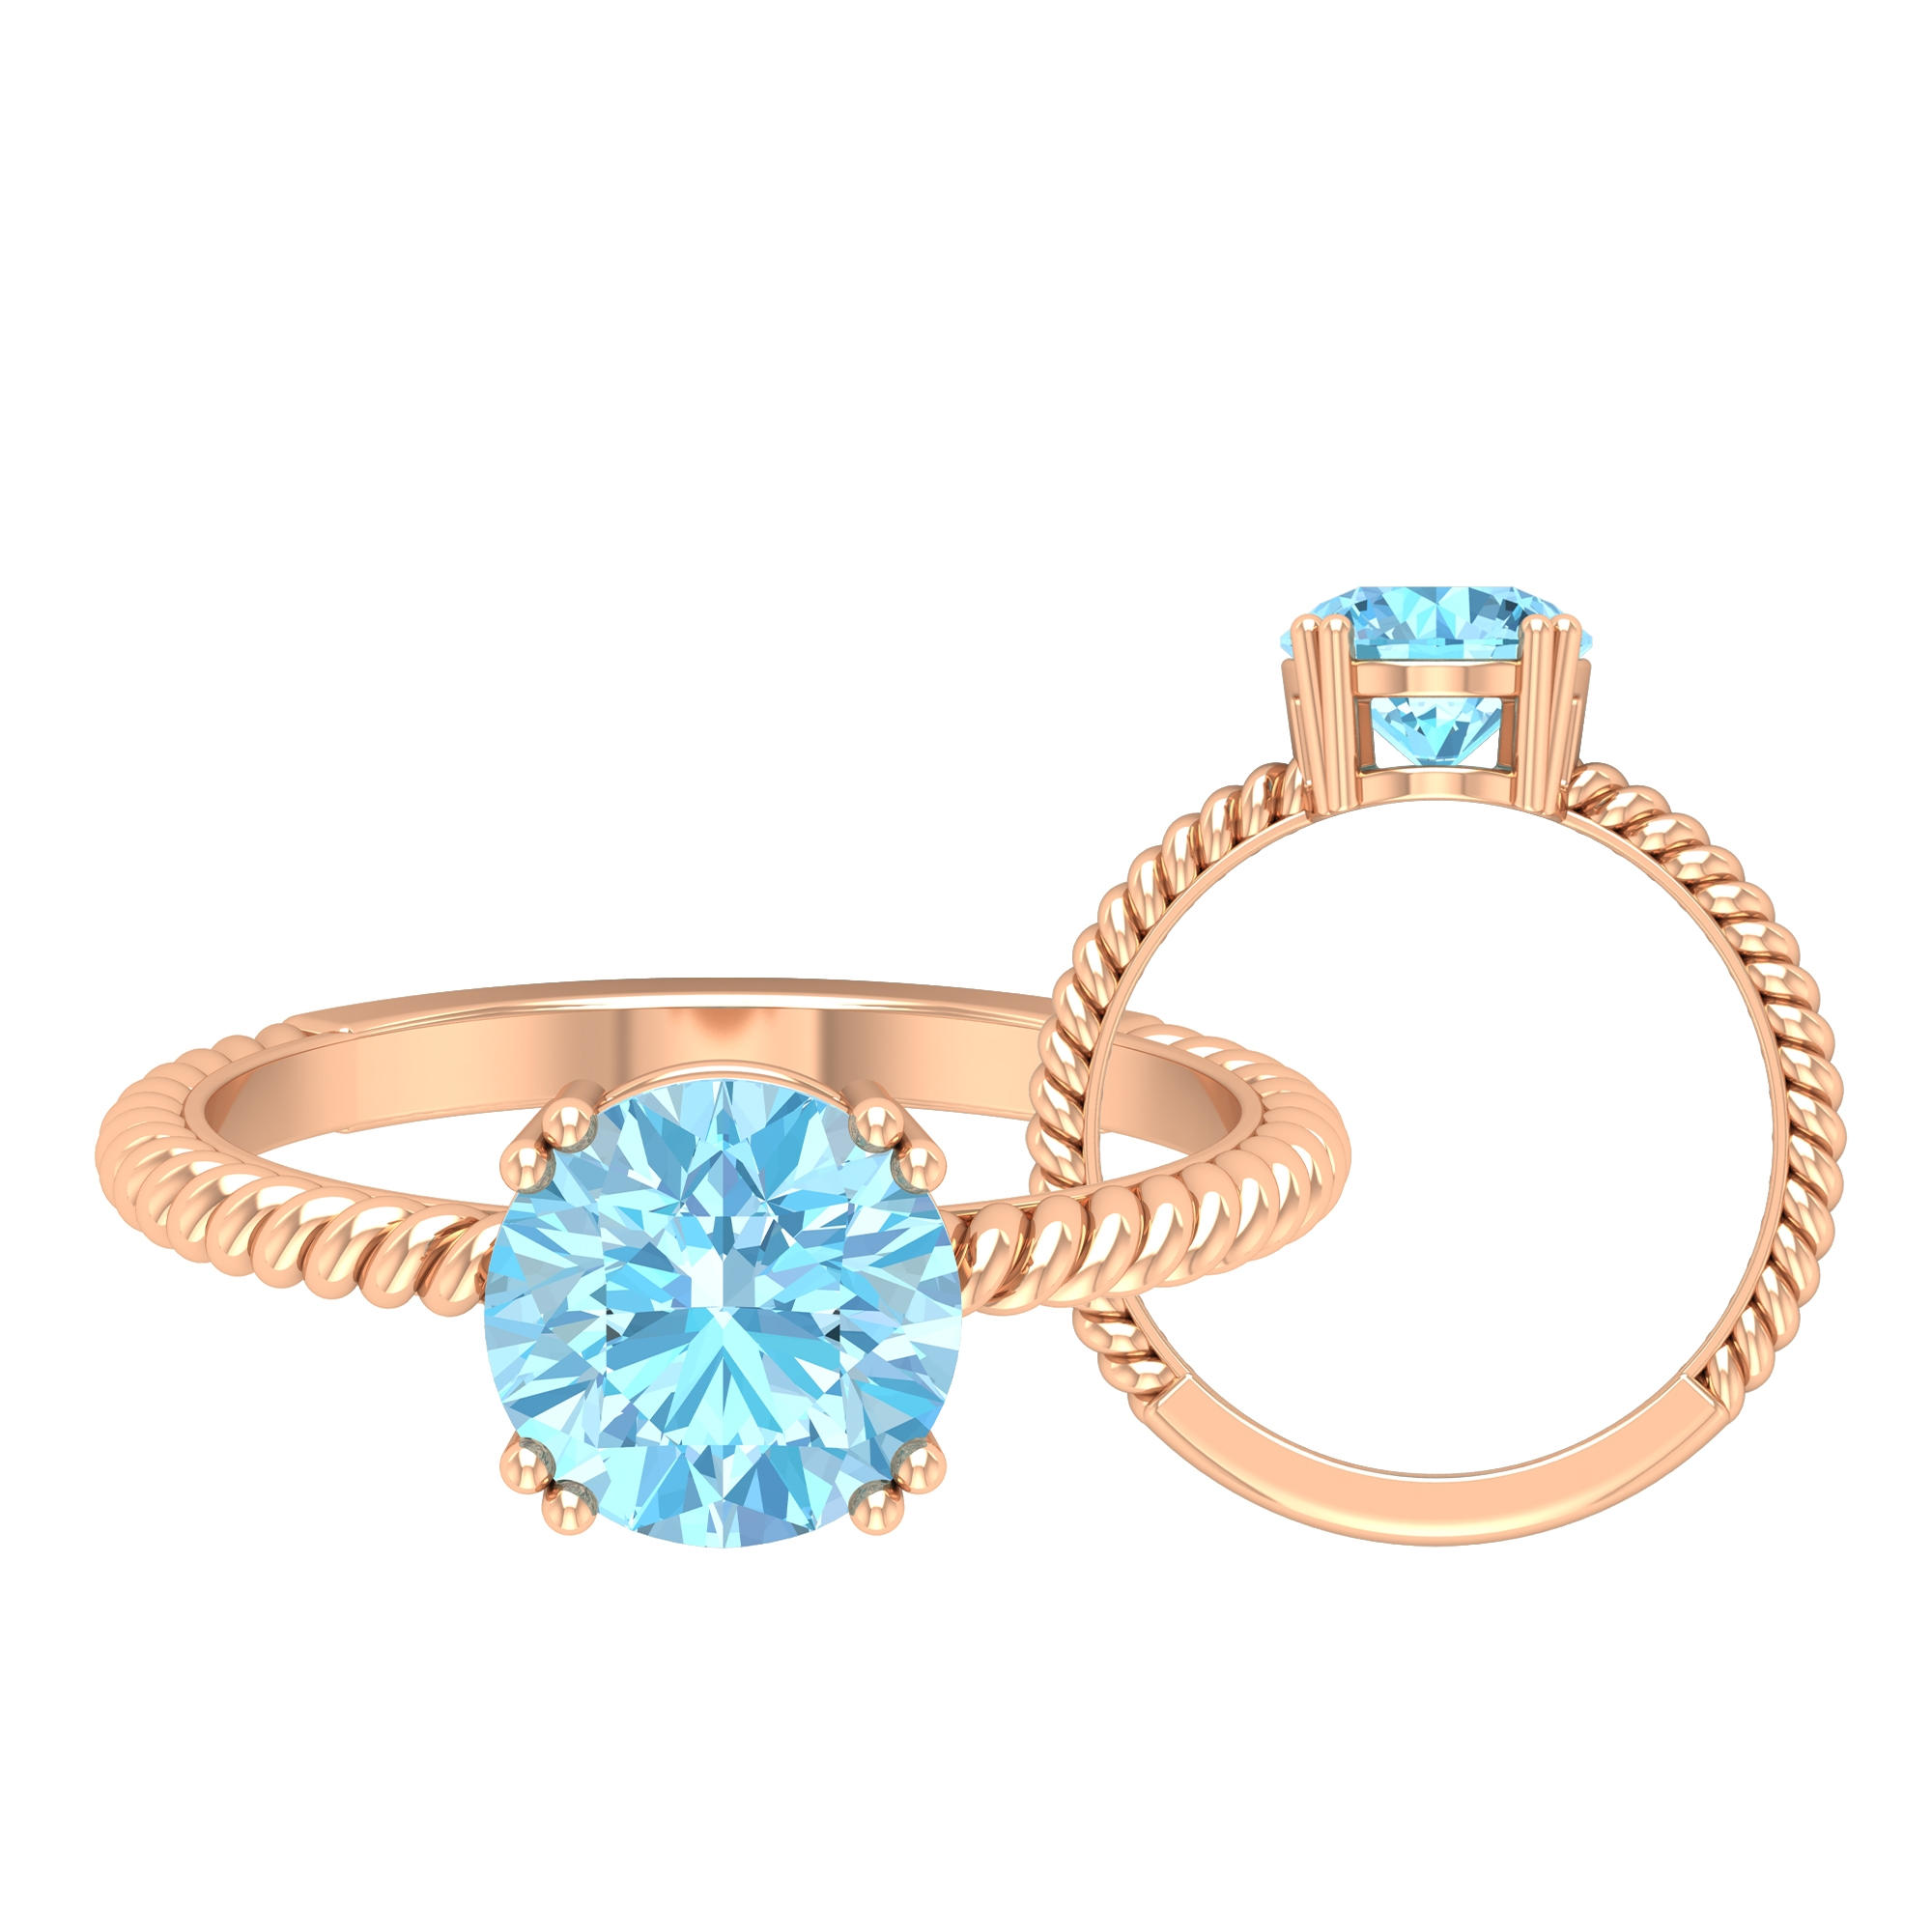 8 MM Round Shape Solitaire Aquamarine Ring in Double Prong Setting with Twisted Rope Detail